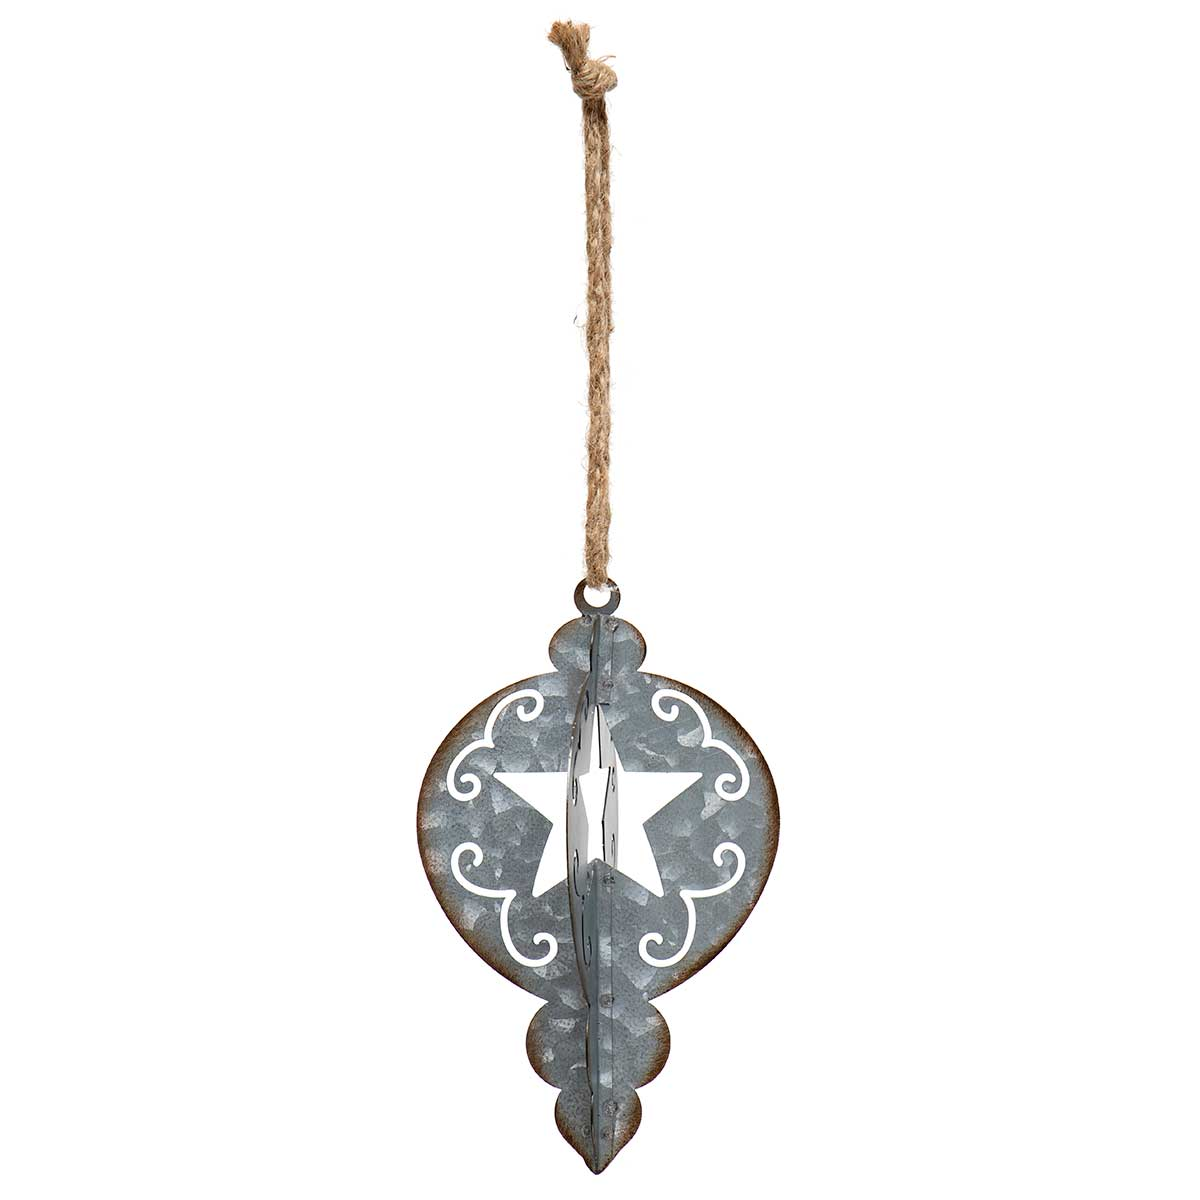 METAL KISMET ORNAMENT WITH STAR CUTOUT